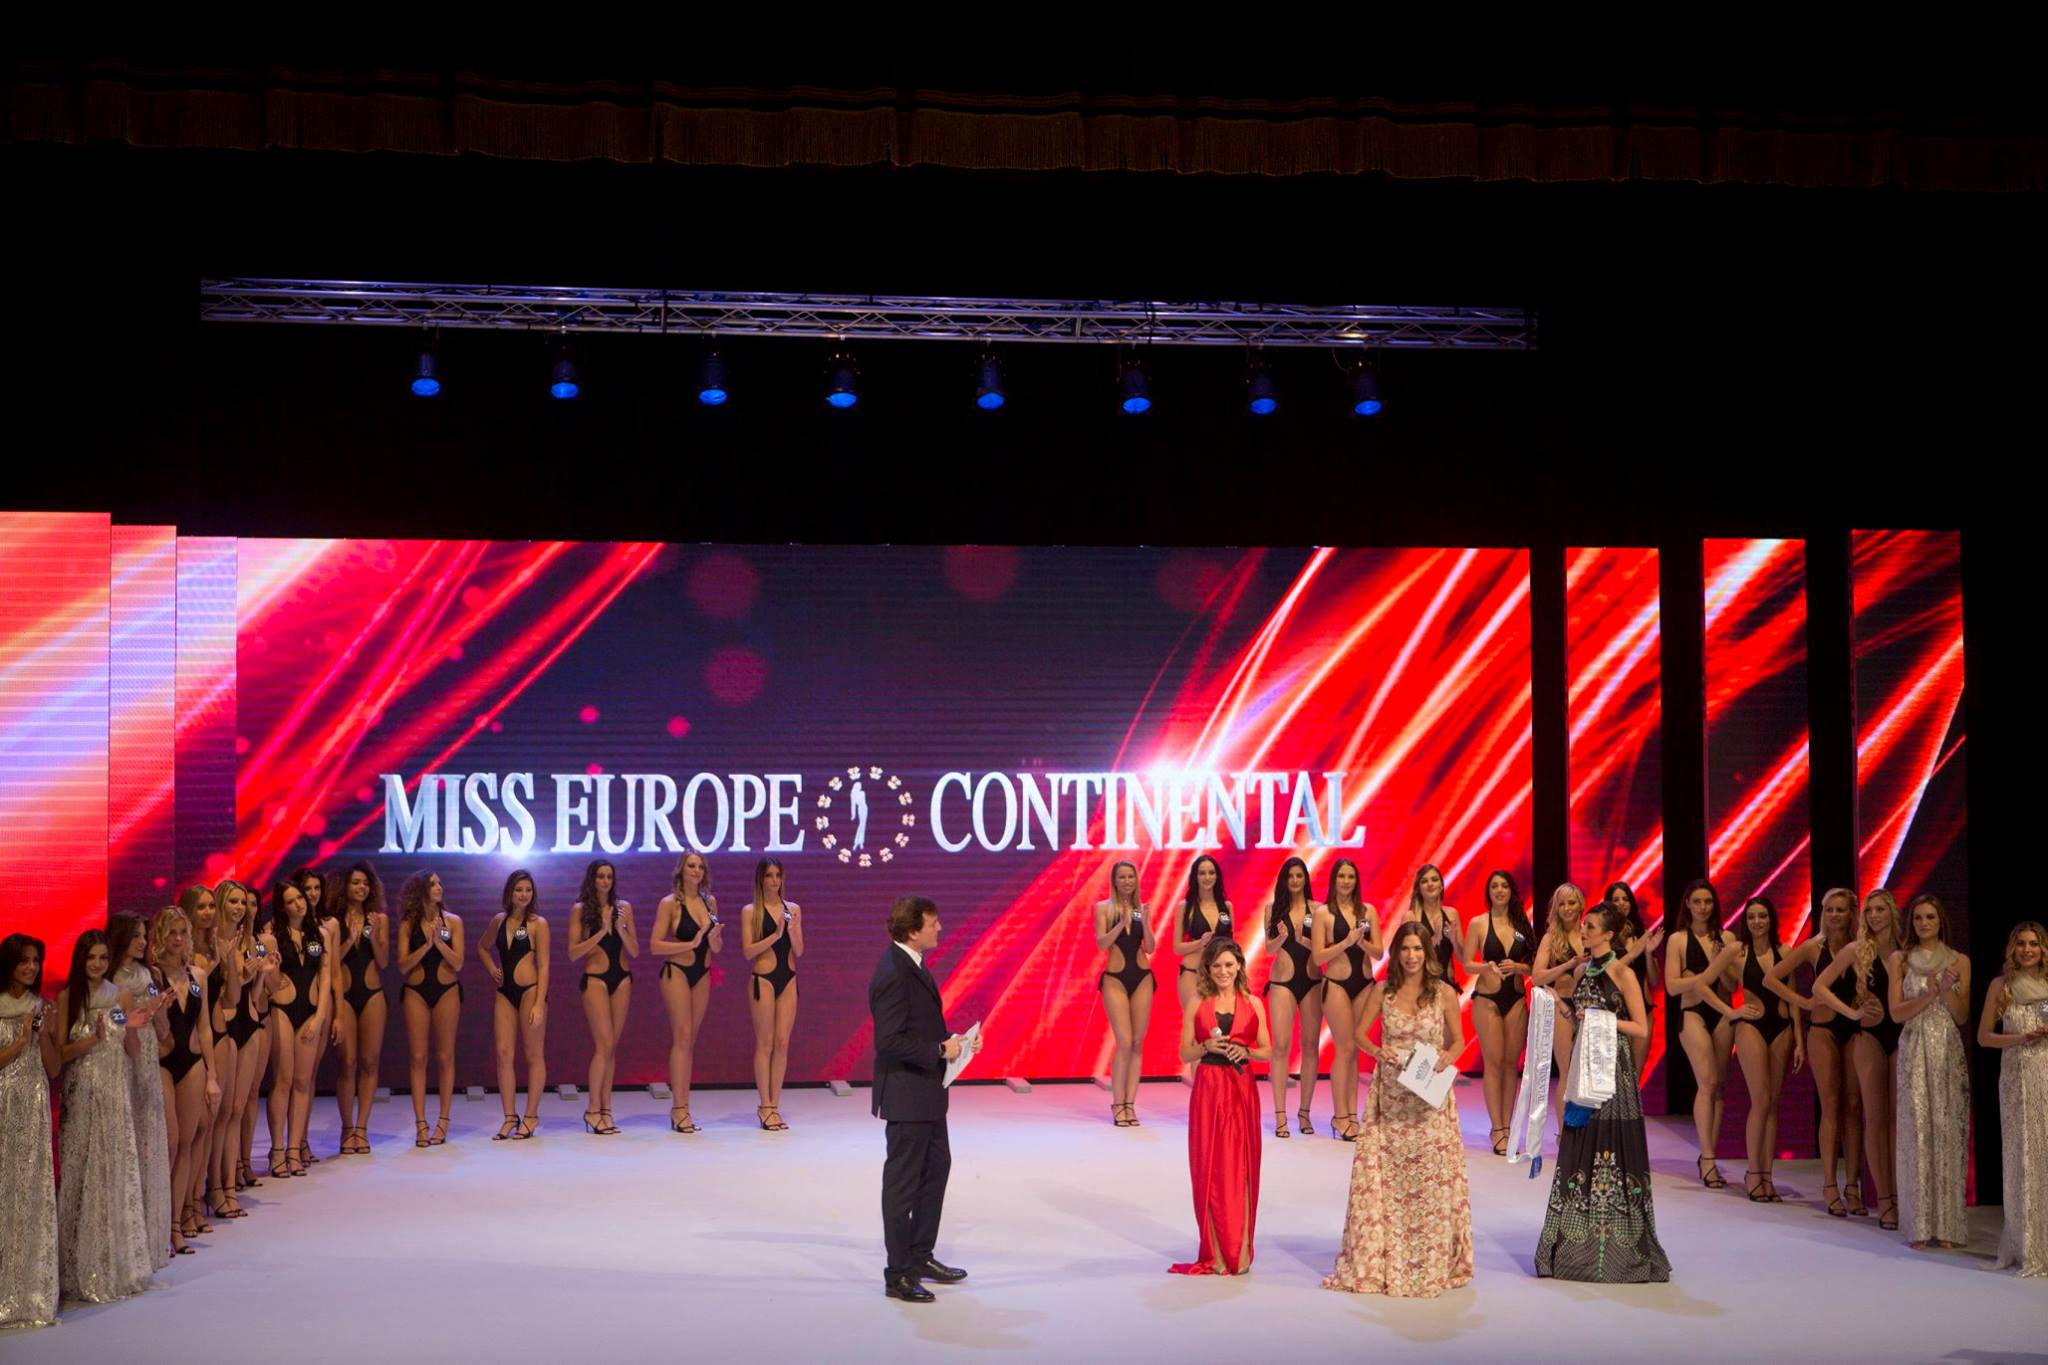 Miss Europe Continental 2017